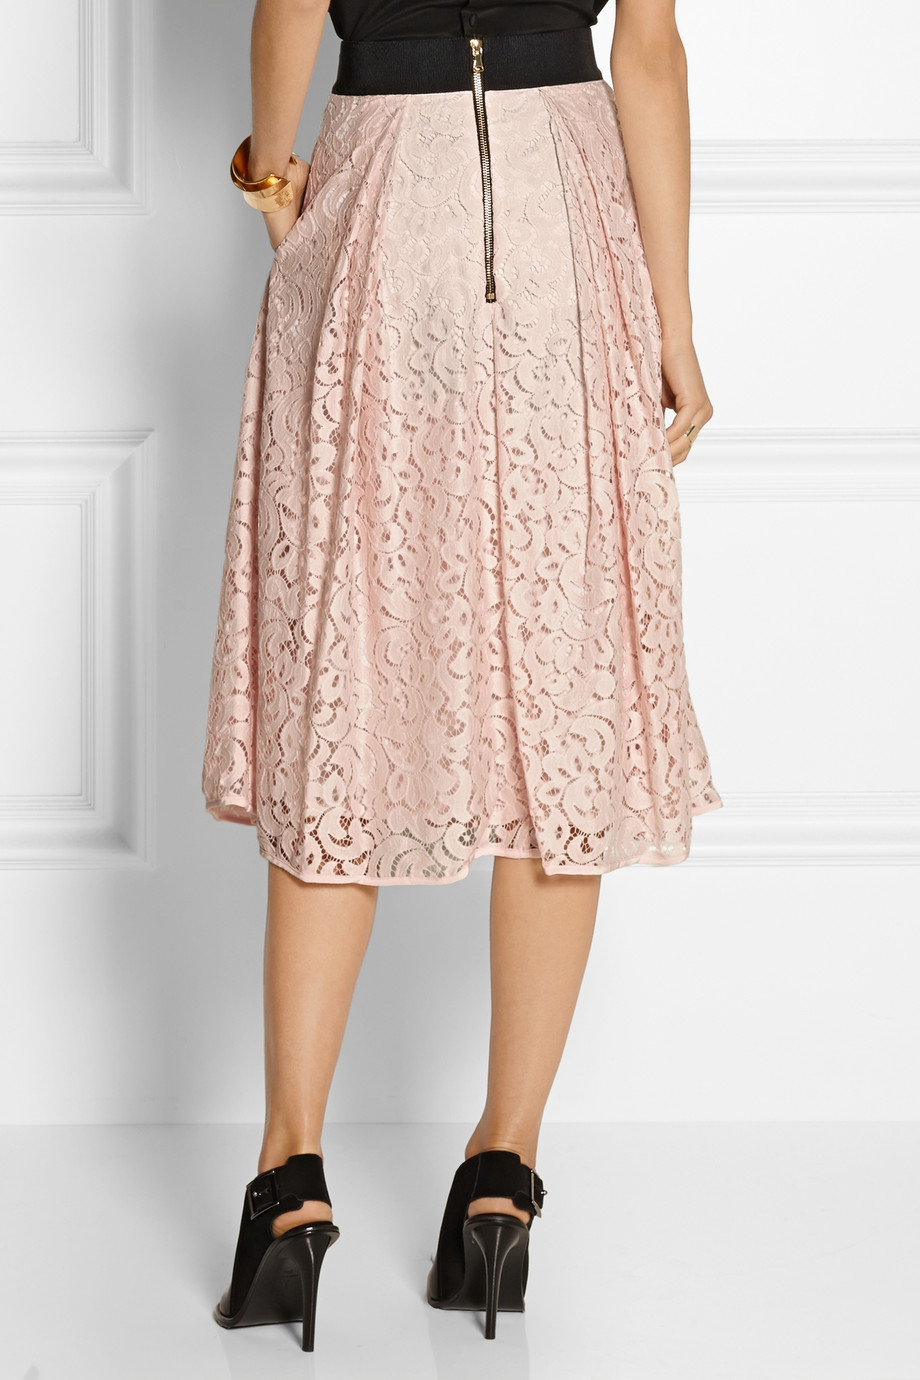 Milly Floral-Lace Midi Skirt in Pink | Lyst